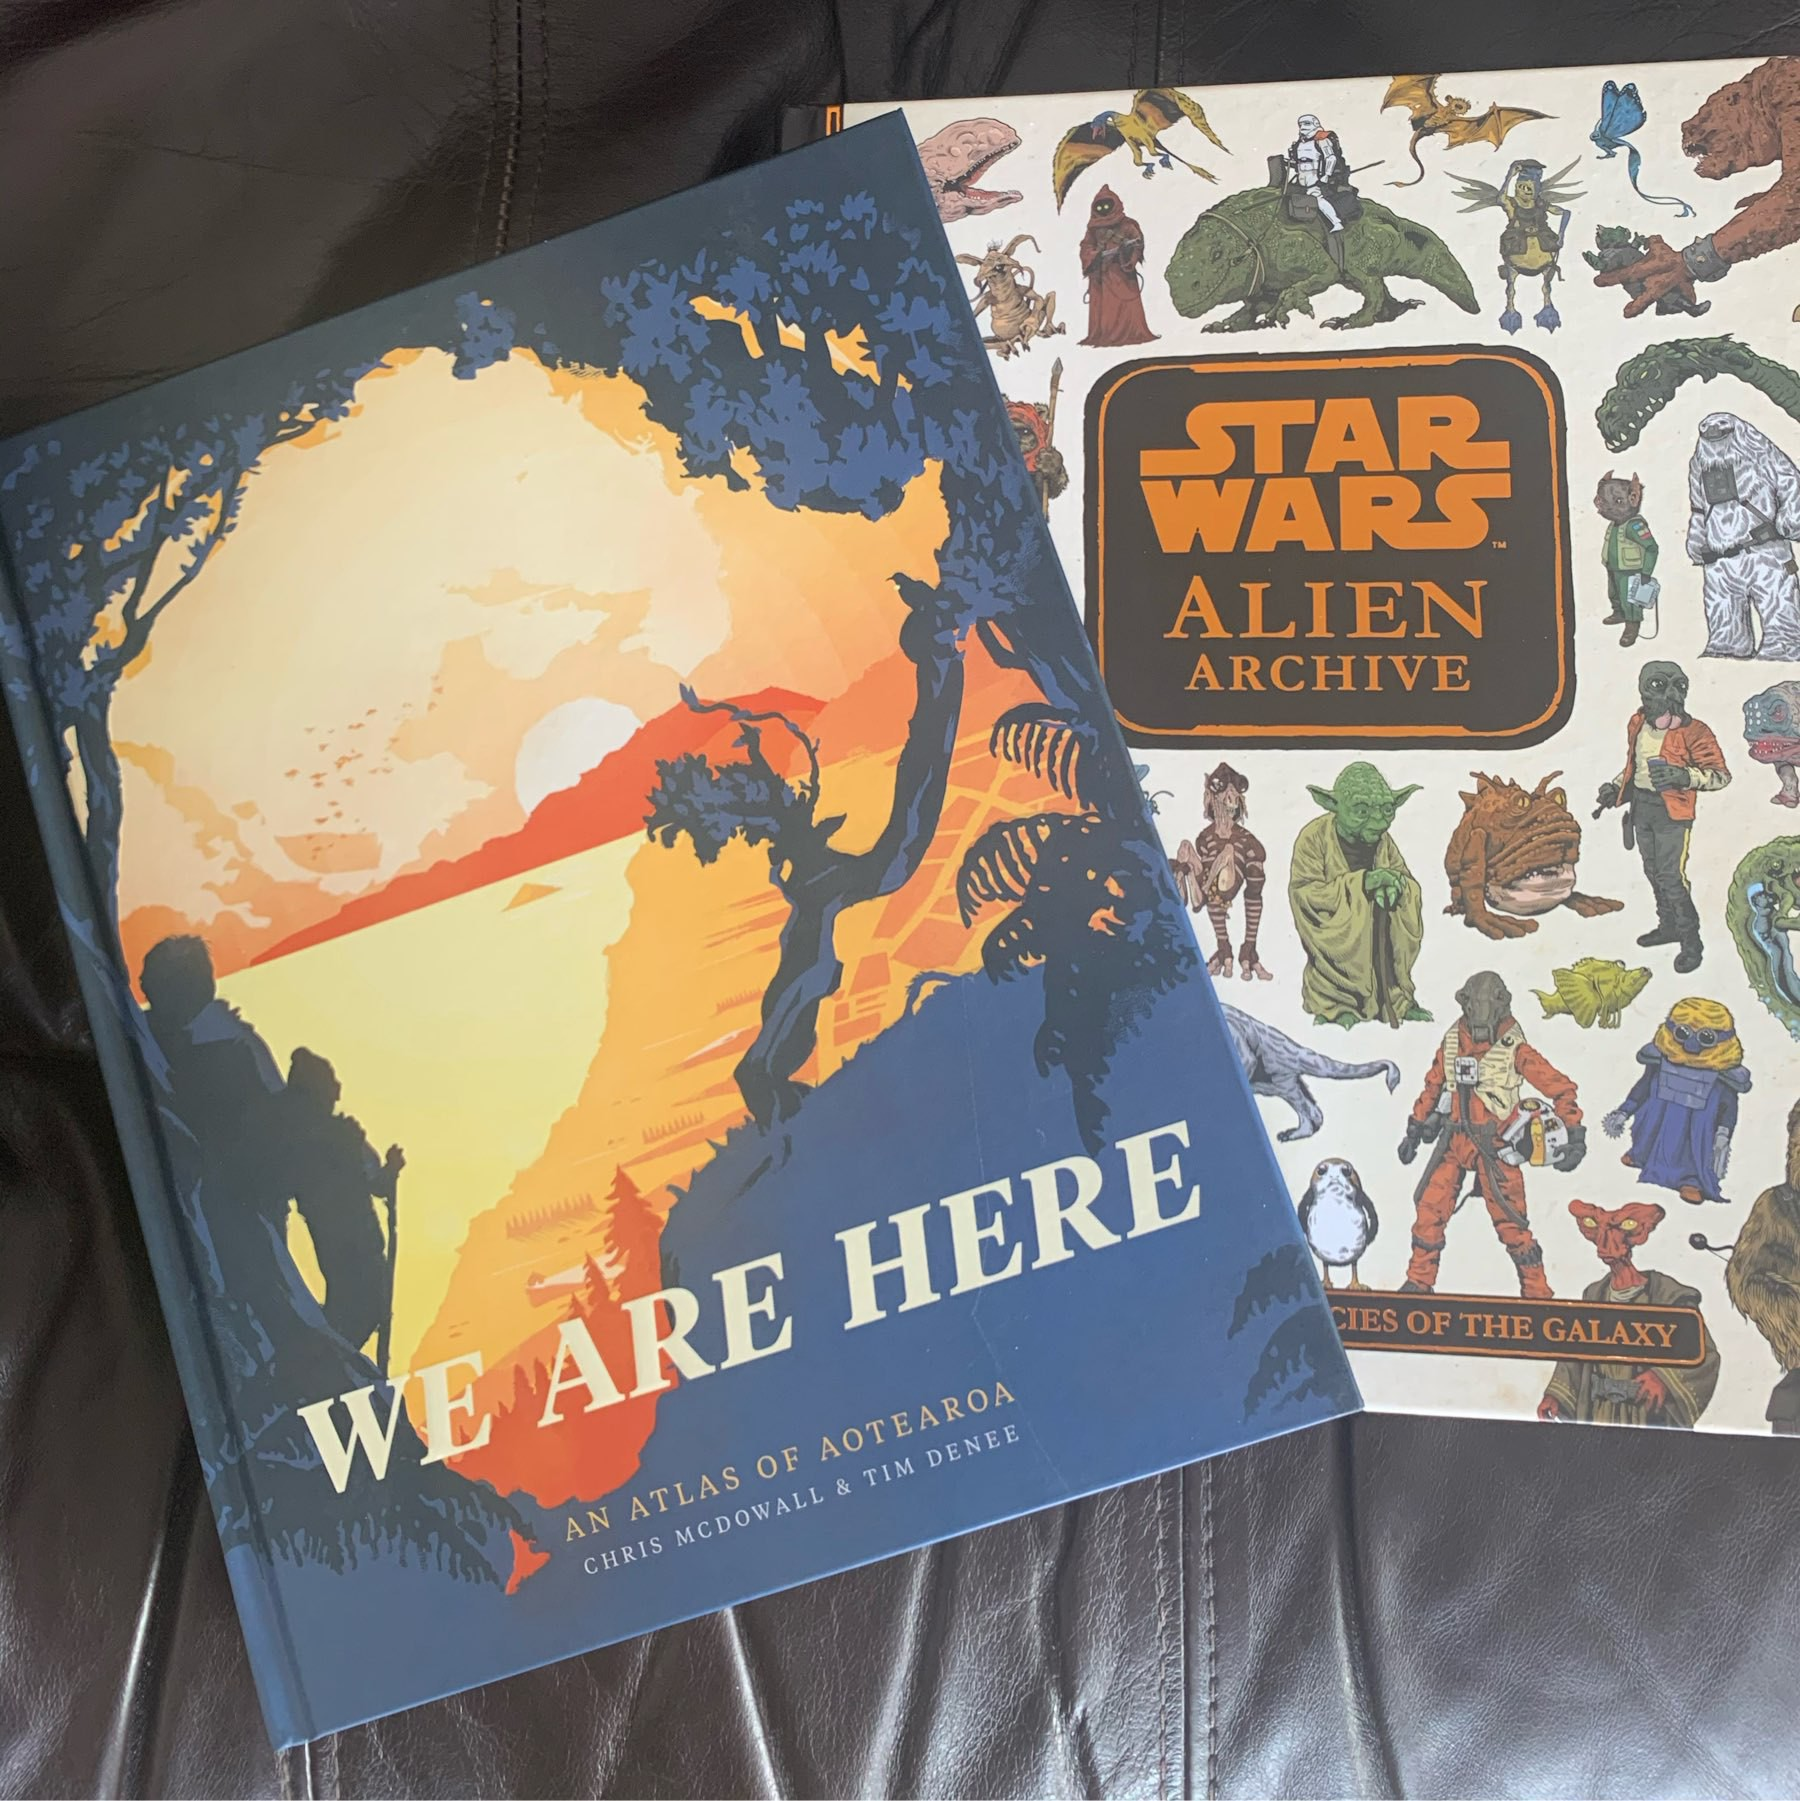 The Star Wars Alien Archive and We Are Here, a infographic atlas of Aoteatoa